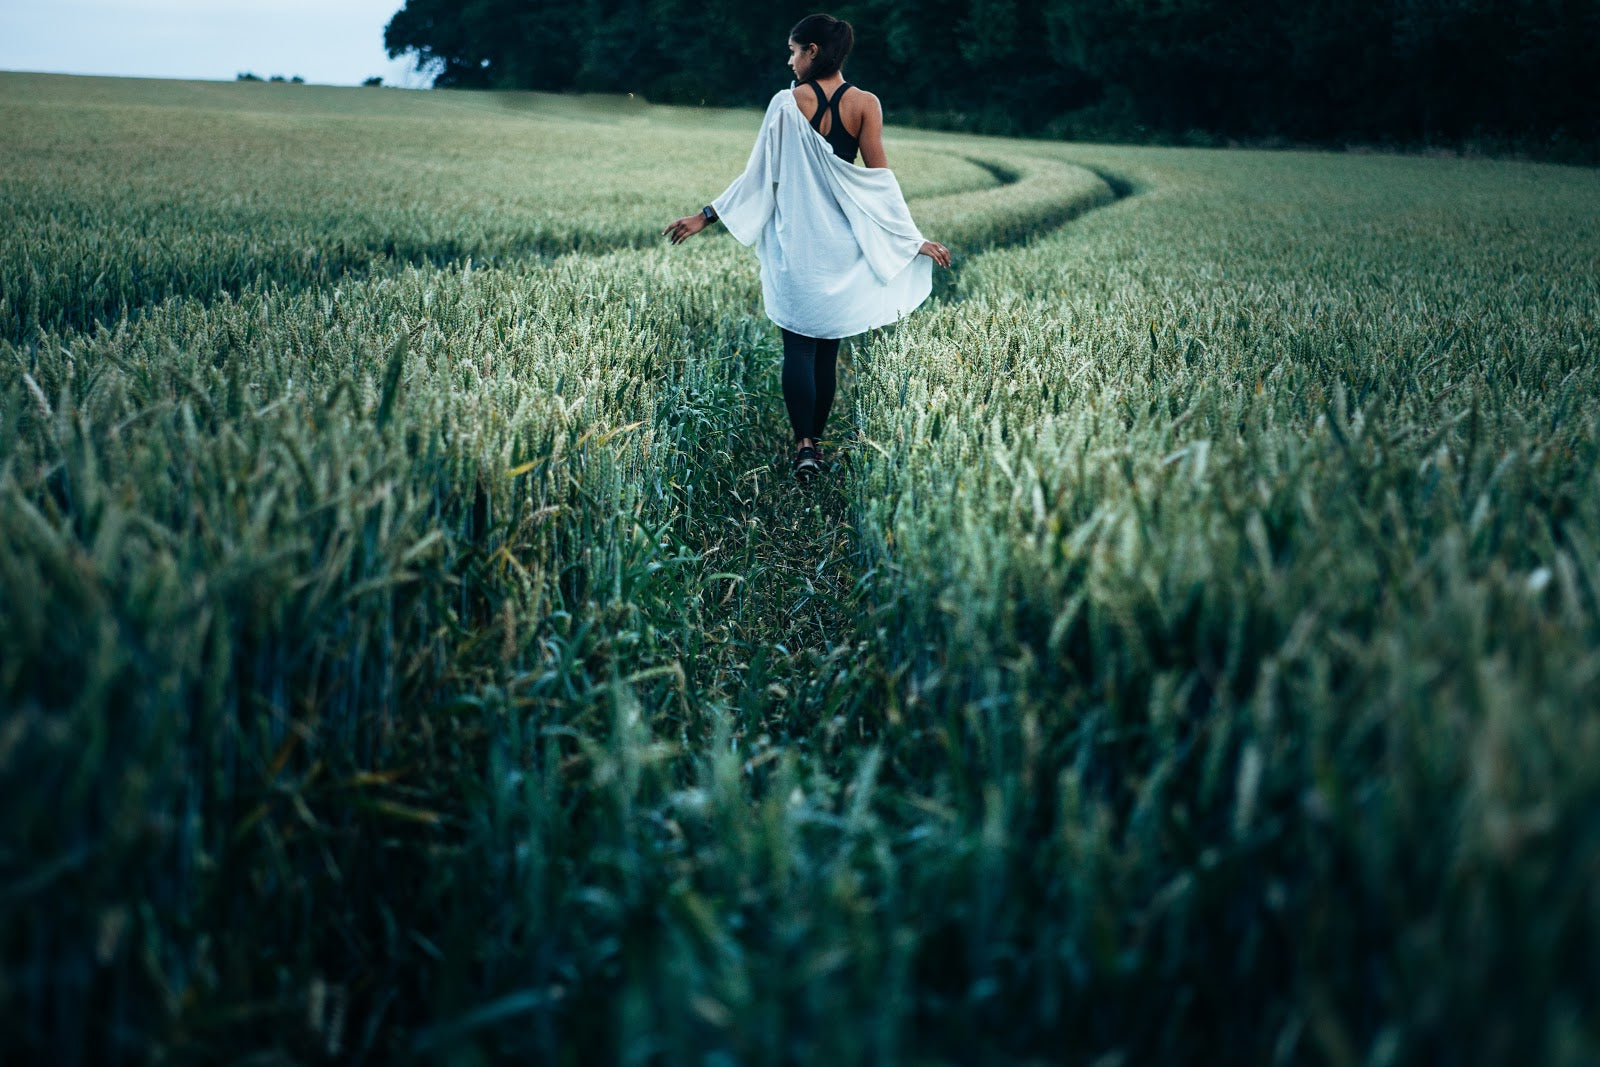 Gut dysbiosis: A woman walks through a field